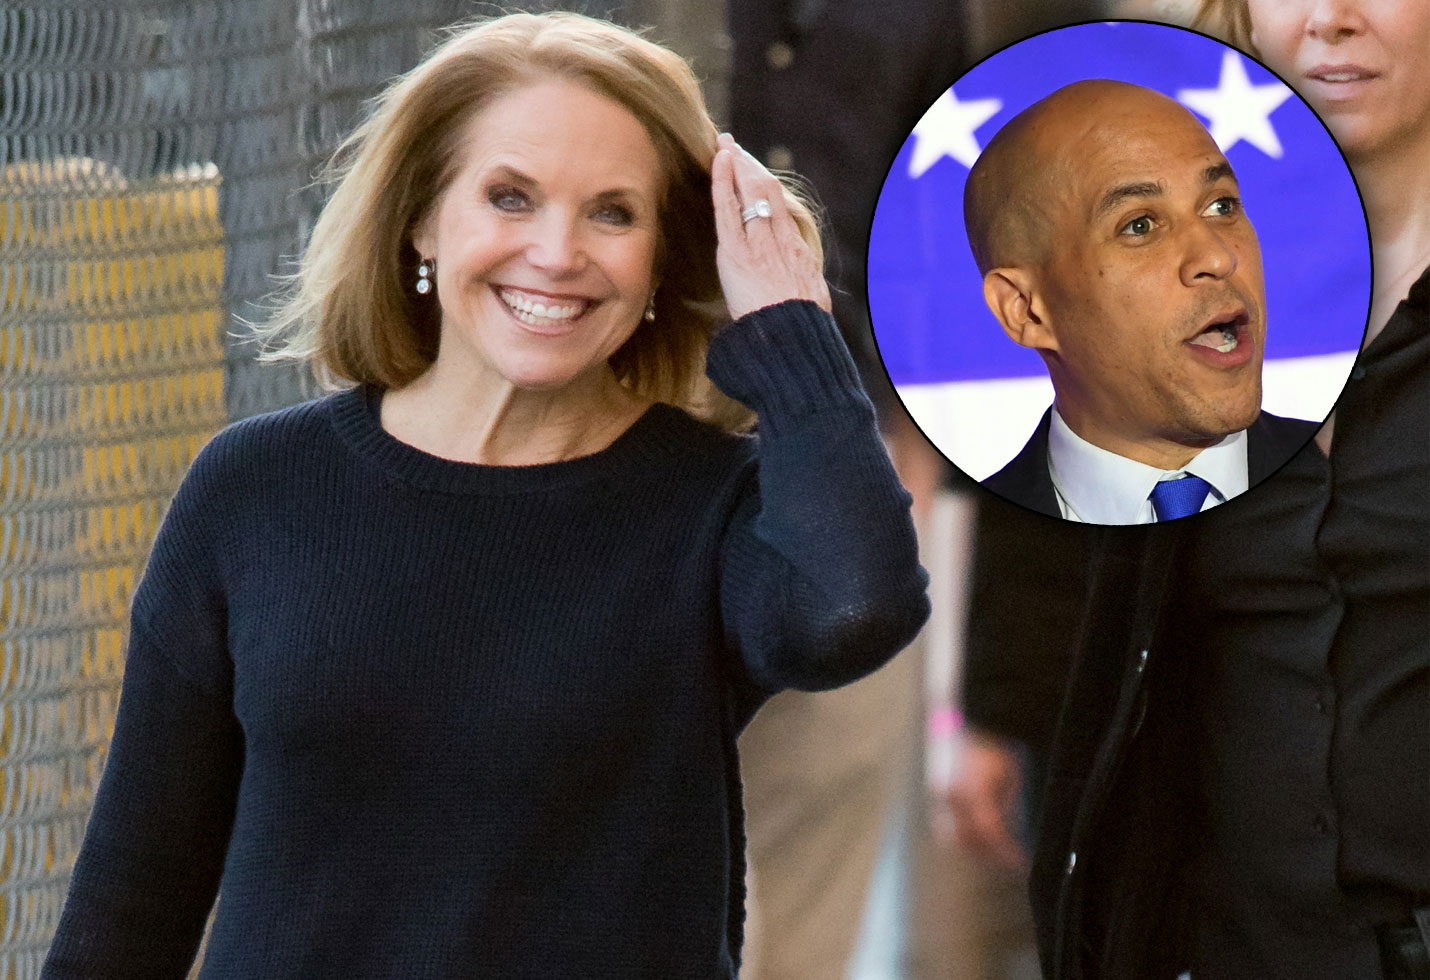 Katie couric dated cory booker wendy williams show